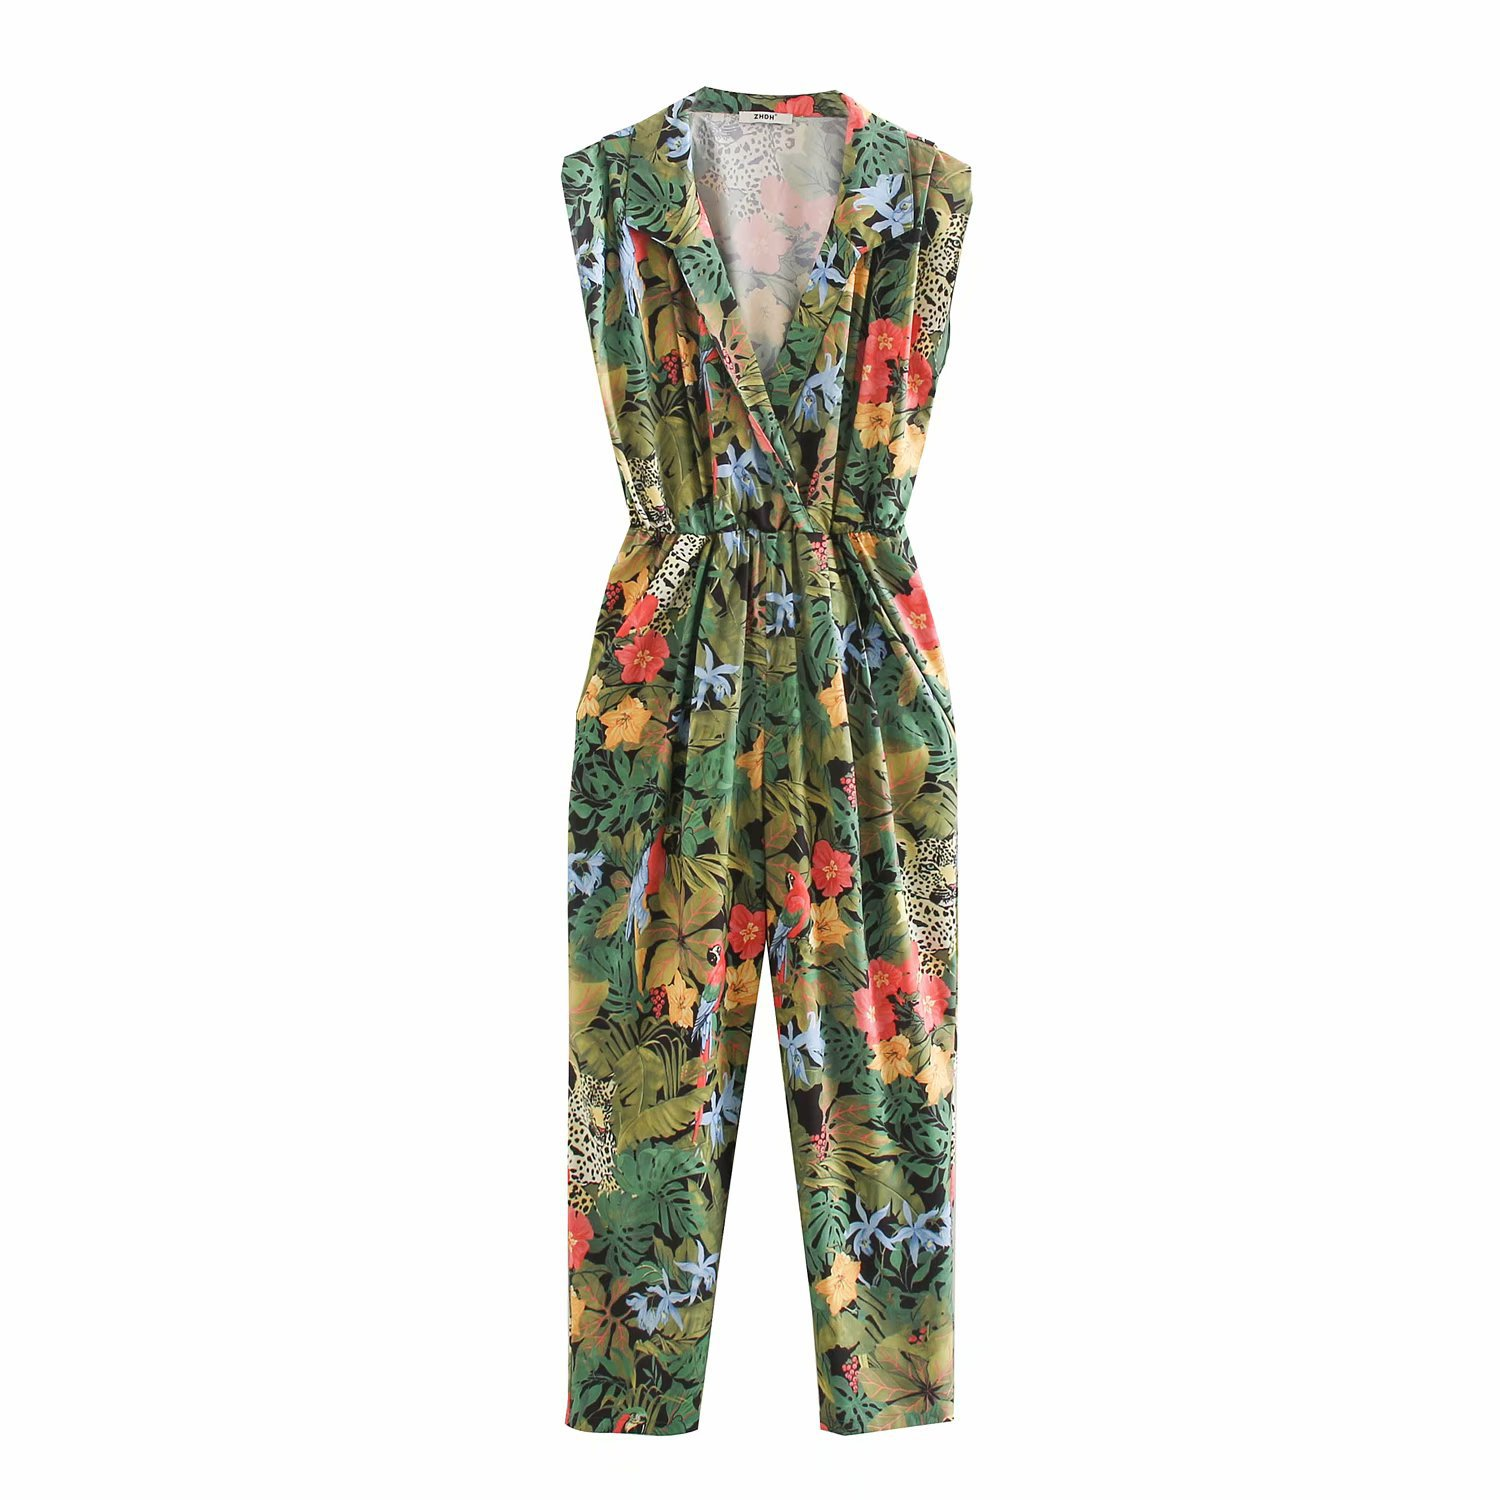 2020 Spring Summer New Grand Prix Print Zaraing Women Jumpsuits Playsuit Sheining Vadiming Ladies Siamese Trousers XDN9532